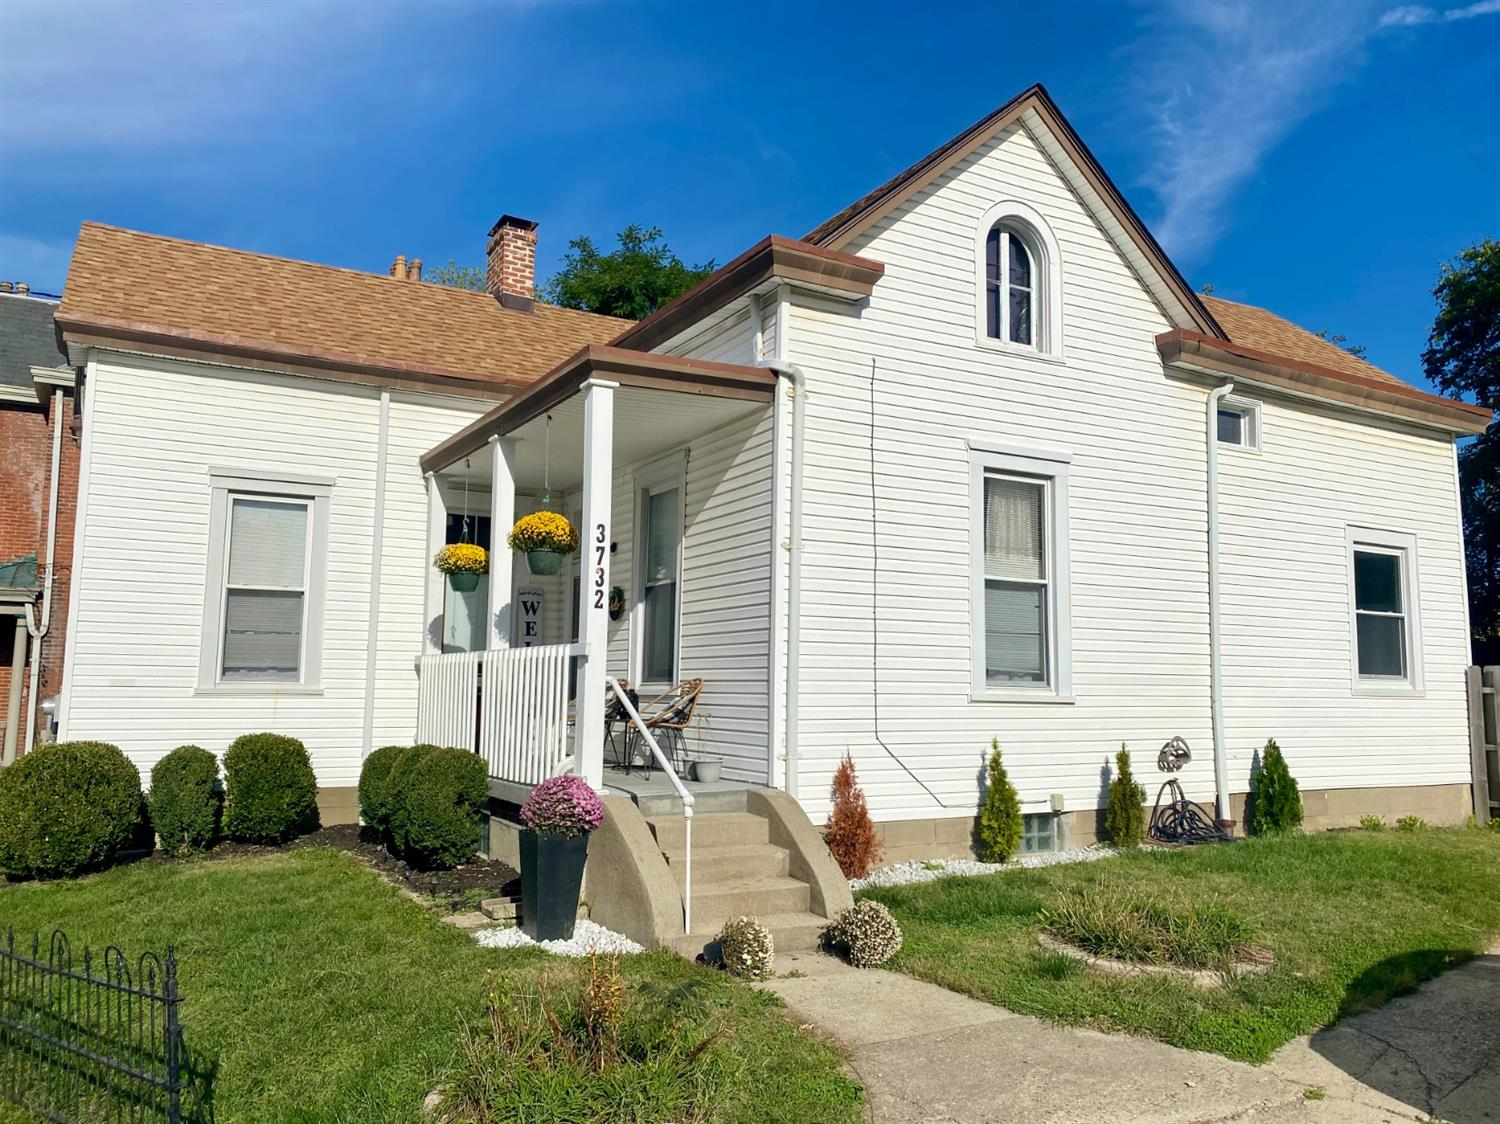 3732 St Lawrence Avenue, Cincinnati, Ohio 45205, 3 Bedrooms Bedrooms, 8 Rooms Rooms,2 BathroomsBathrooms,Single Family Residence,For Sale,St Lawrence,1718588